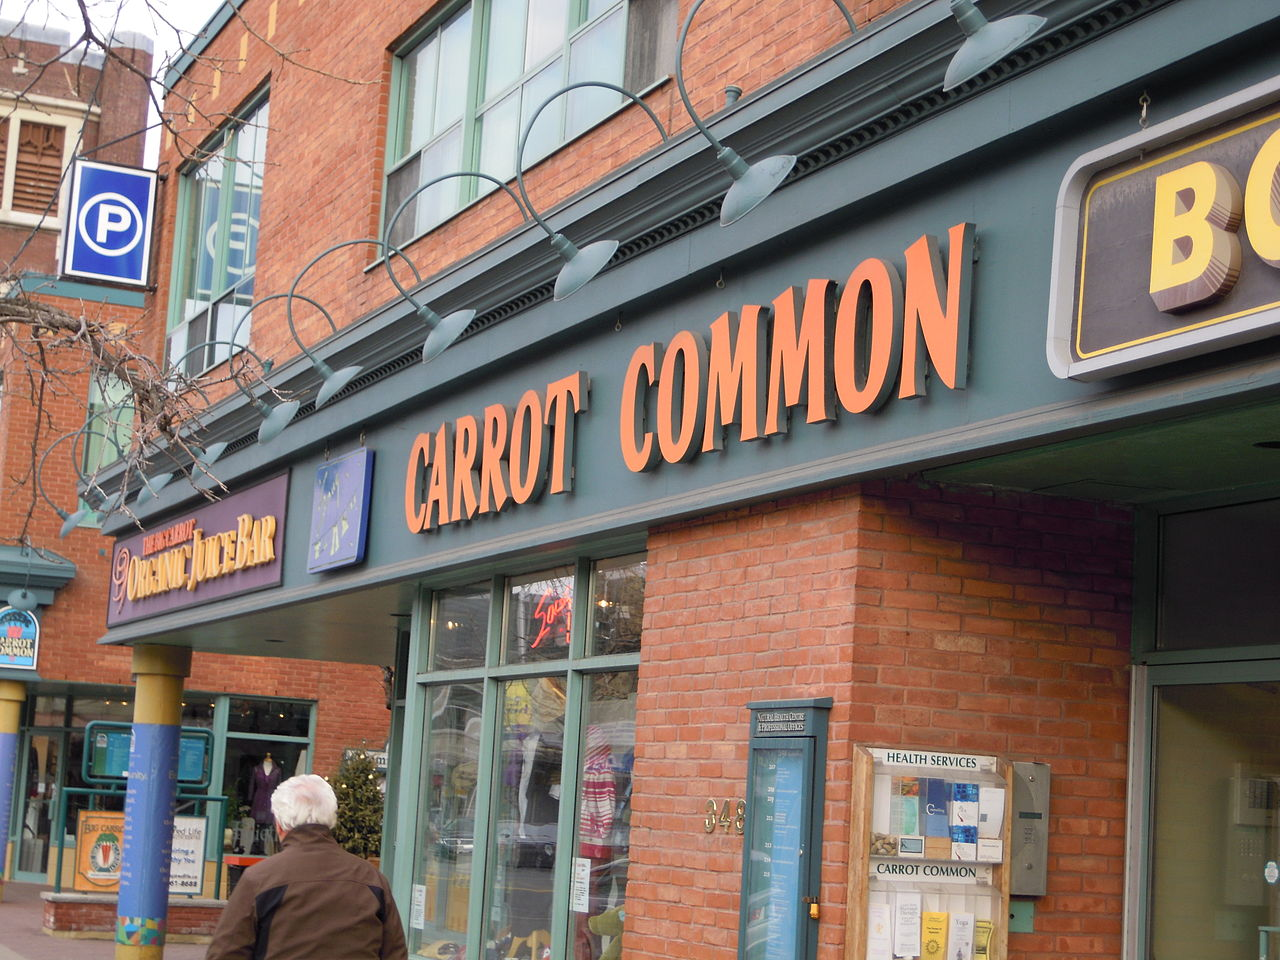 Carrot Common storefront sign on 384 Danforth Avenue, Greektown Toronto.